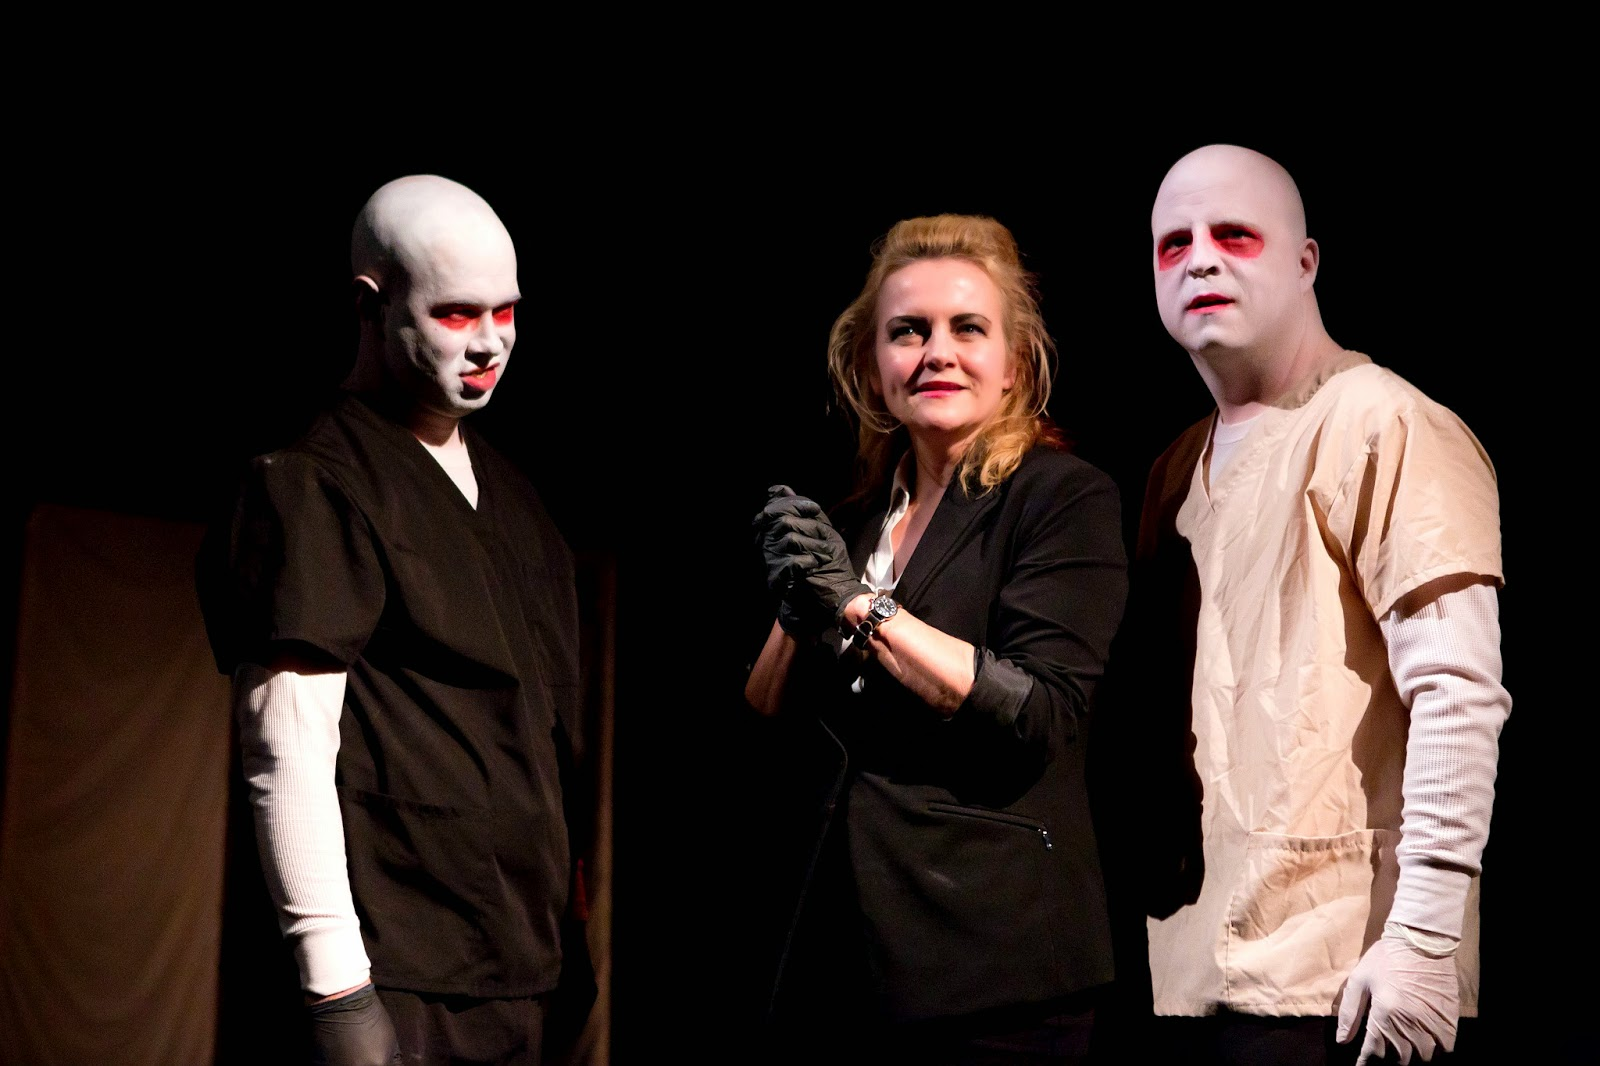 com the blood brothers present bedlam nightmares framework for the evening is losing patients by mac rogers which features more of the interactions between doctor queen and the blood brothers along